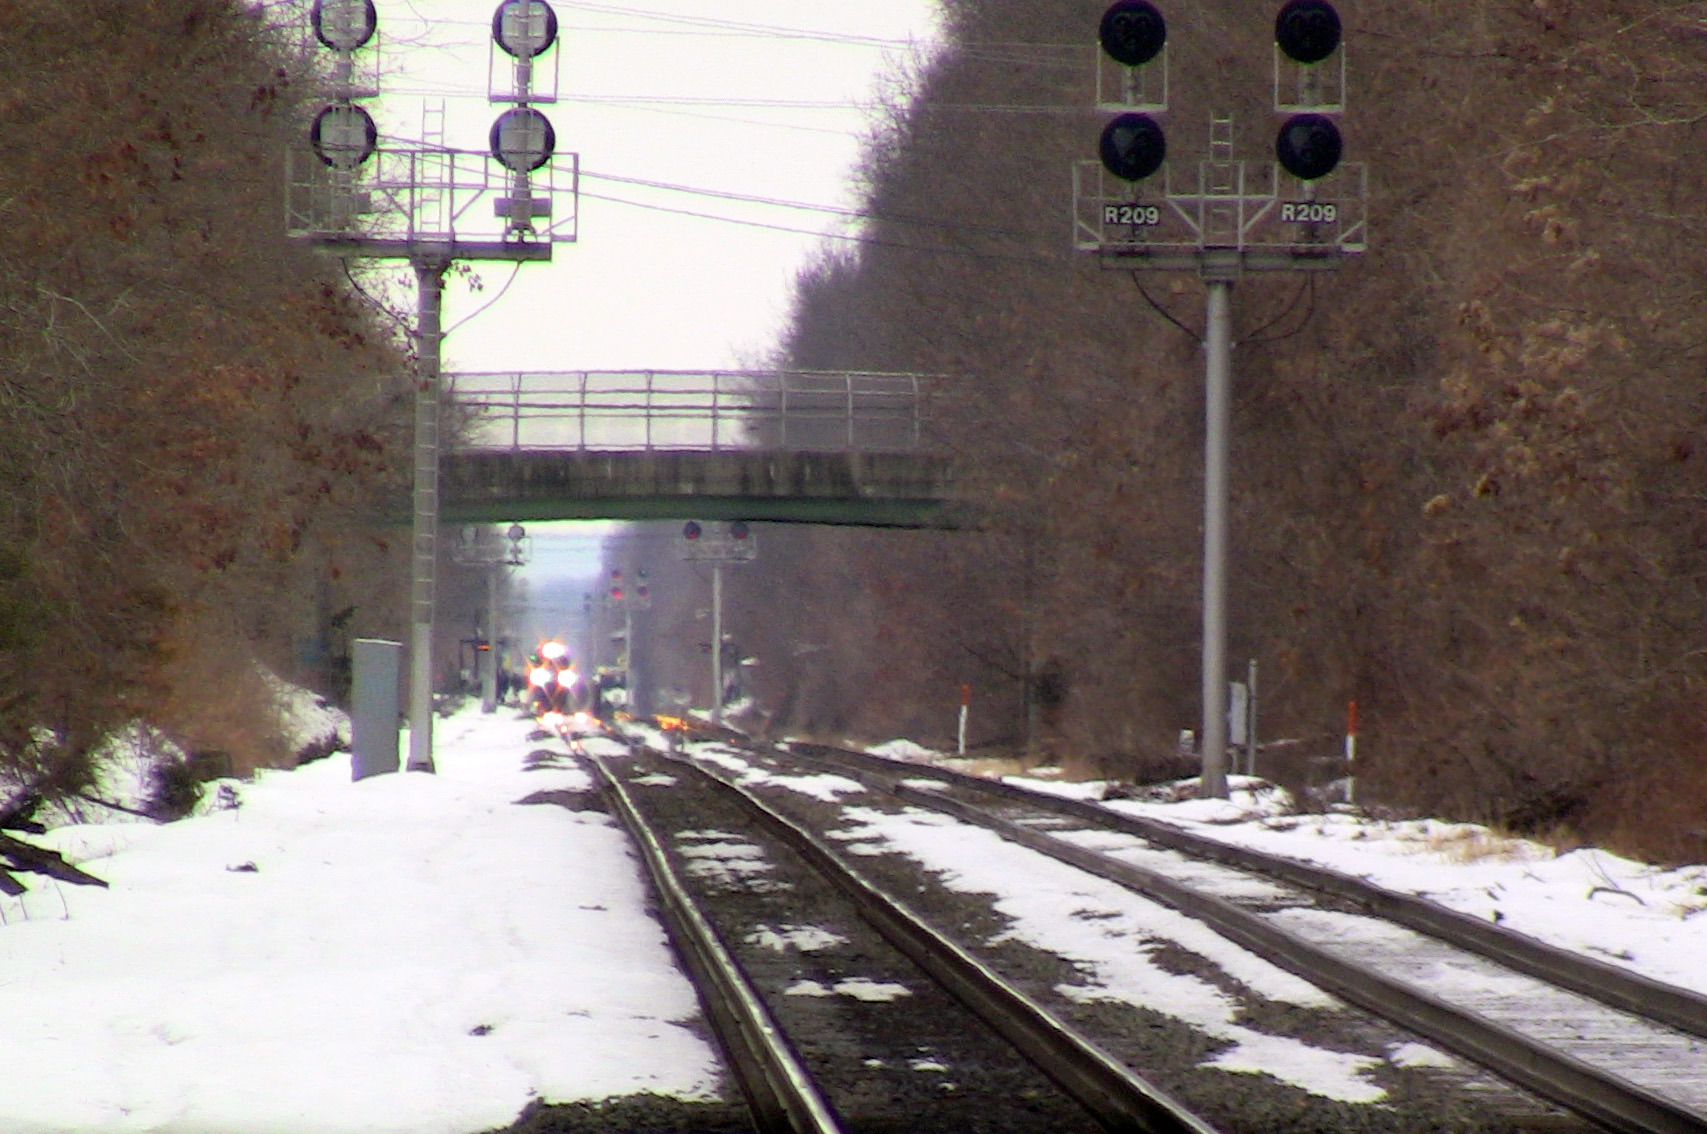 c0fd013c147a147072a6_First_dual-powered_train_approaches_Fanwood_station.jpg